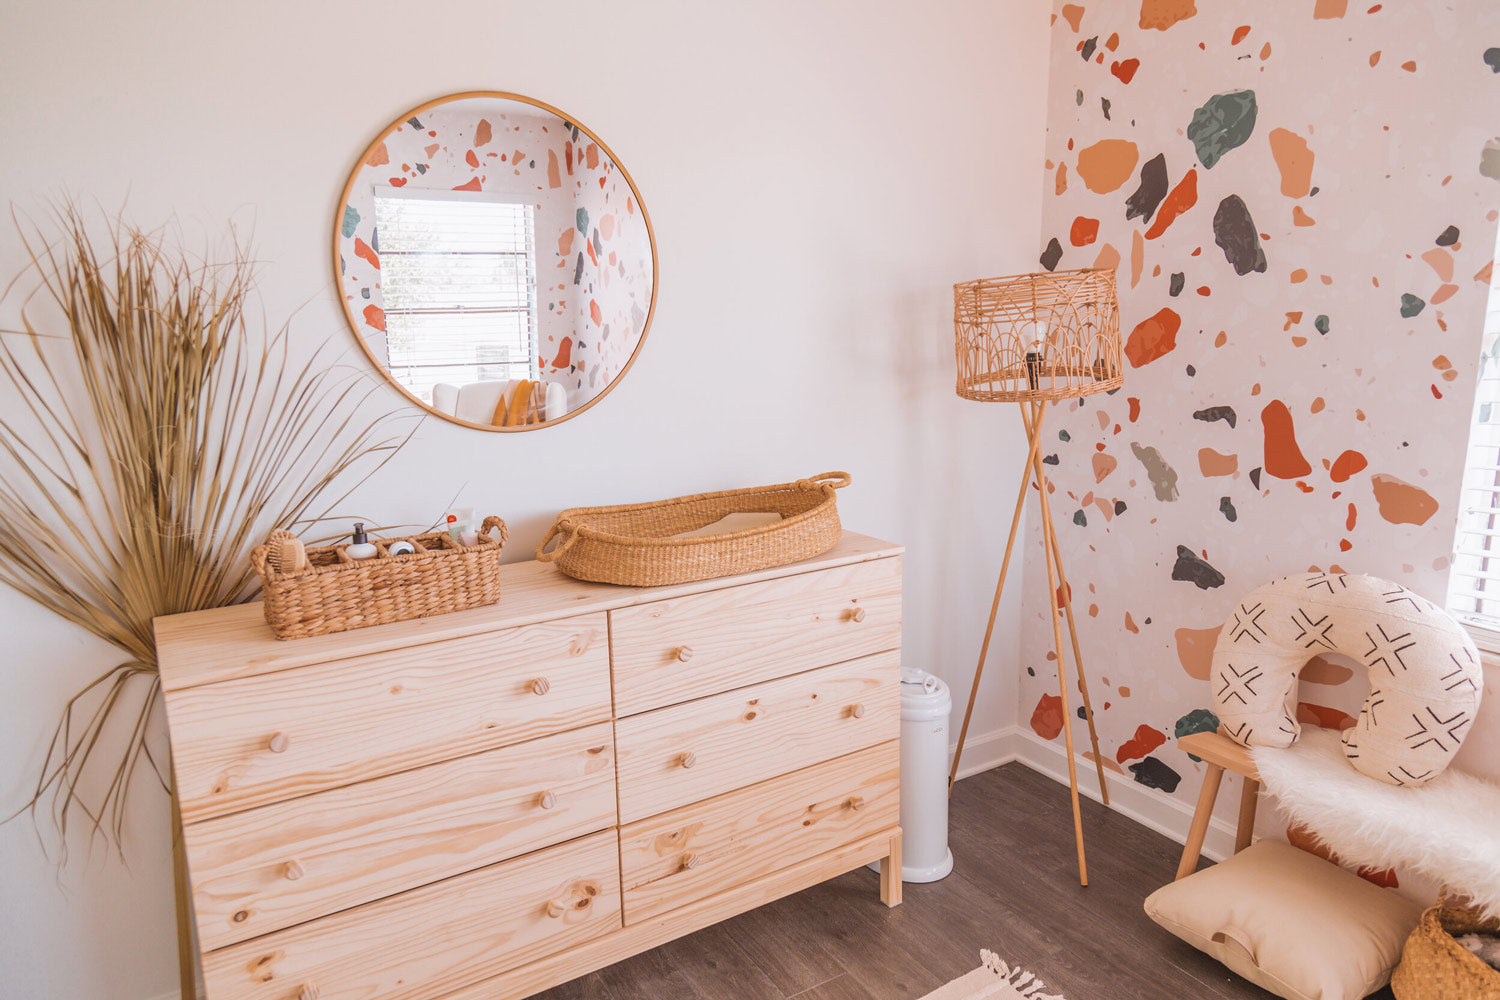 Baby nursery changing table with round mirror and dried palm leaf decor